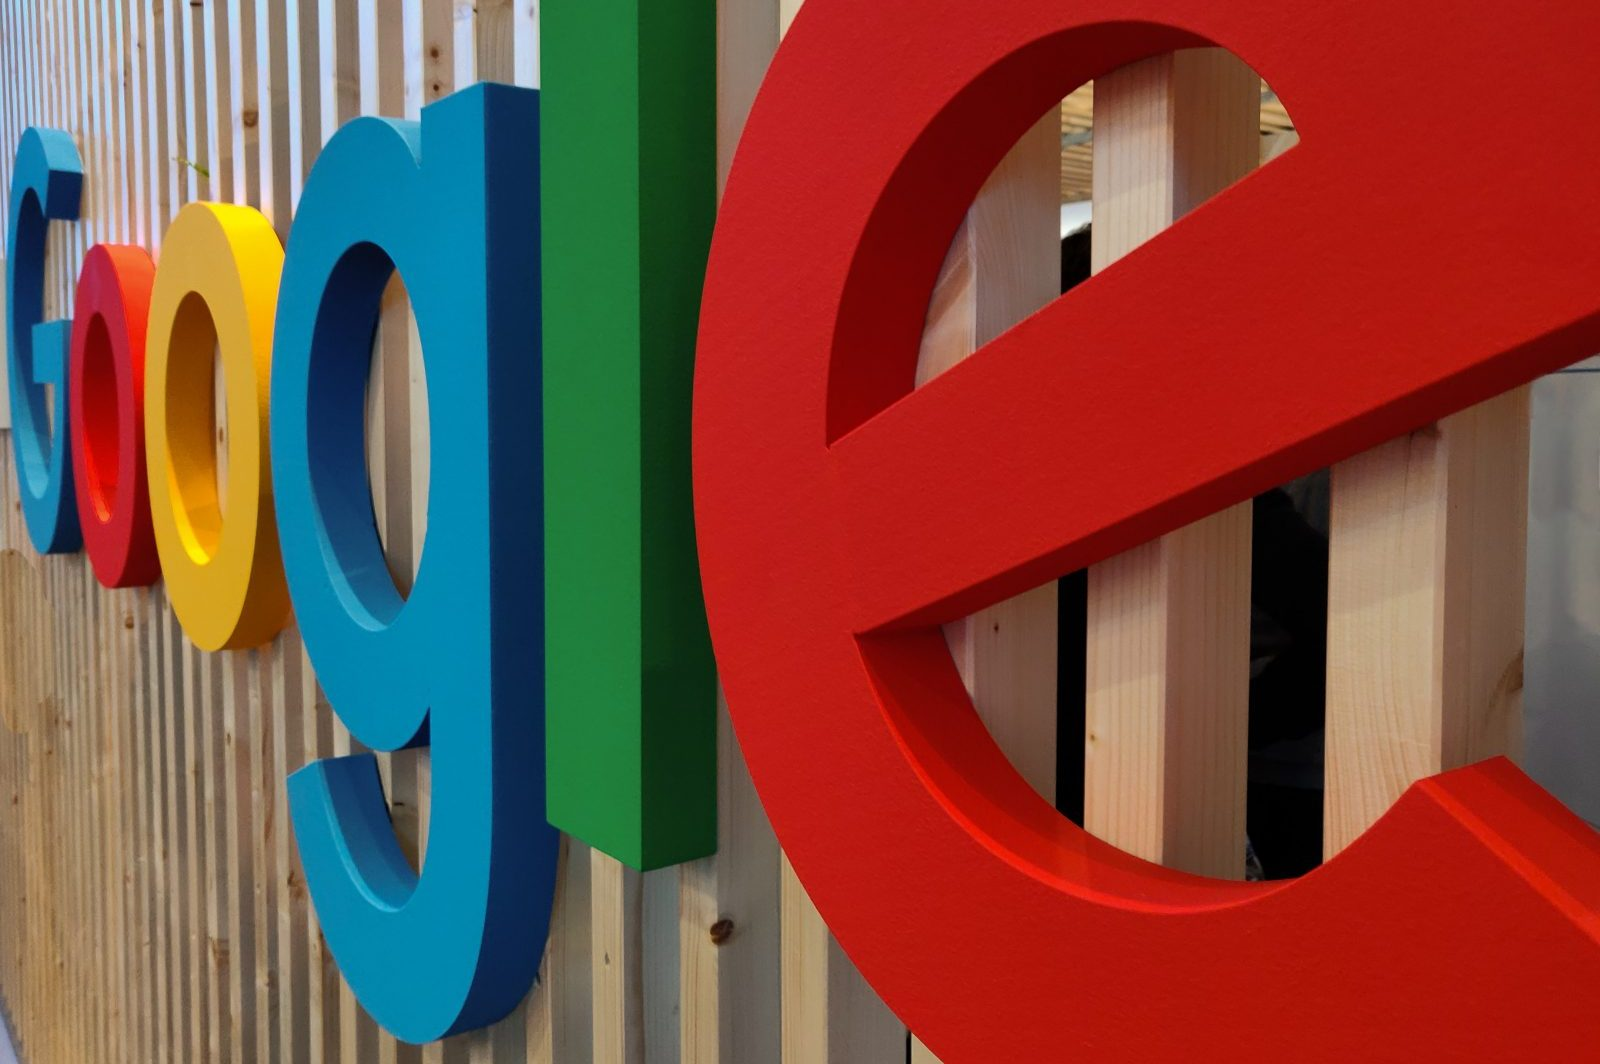 The Google Antitrust Suit and Big Tech's Fall From Grace